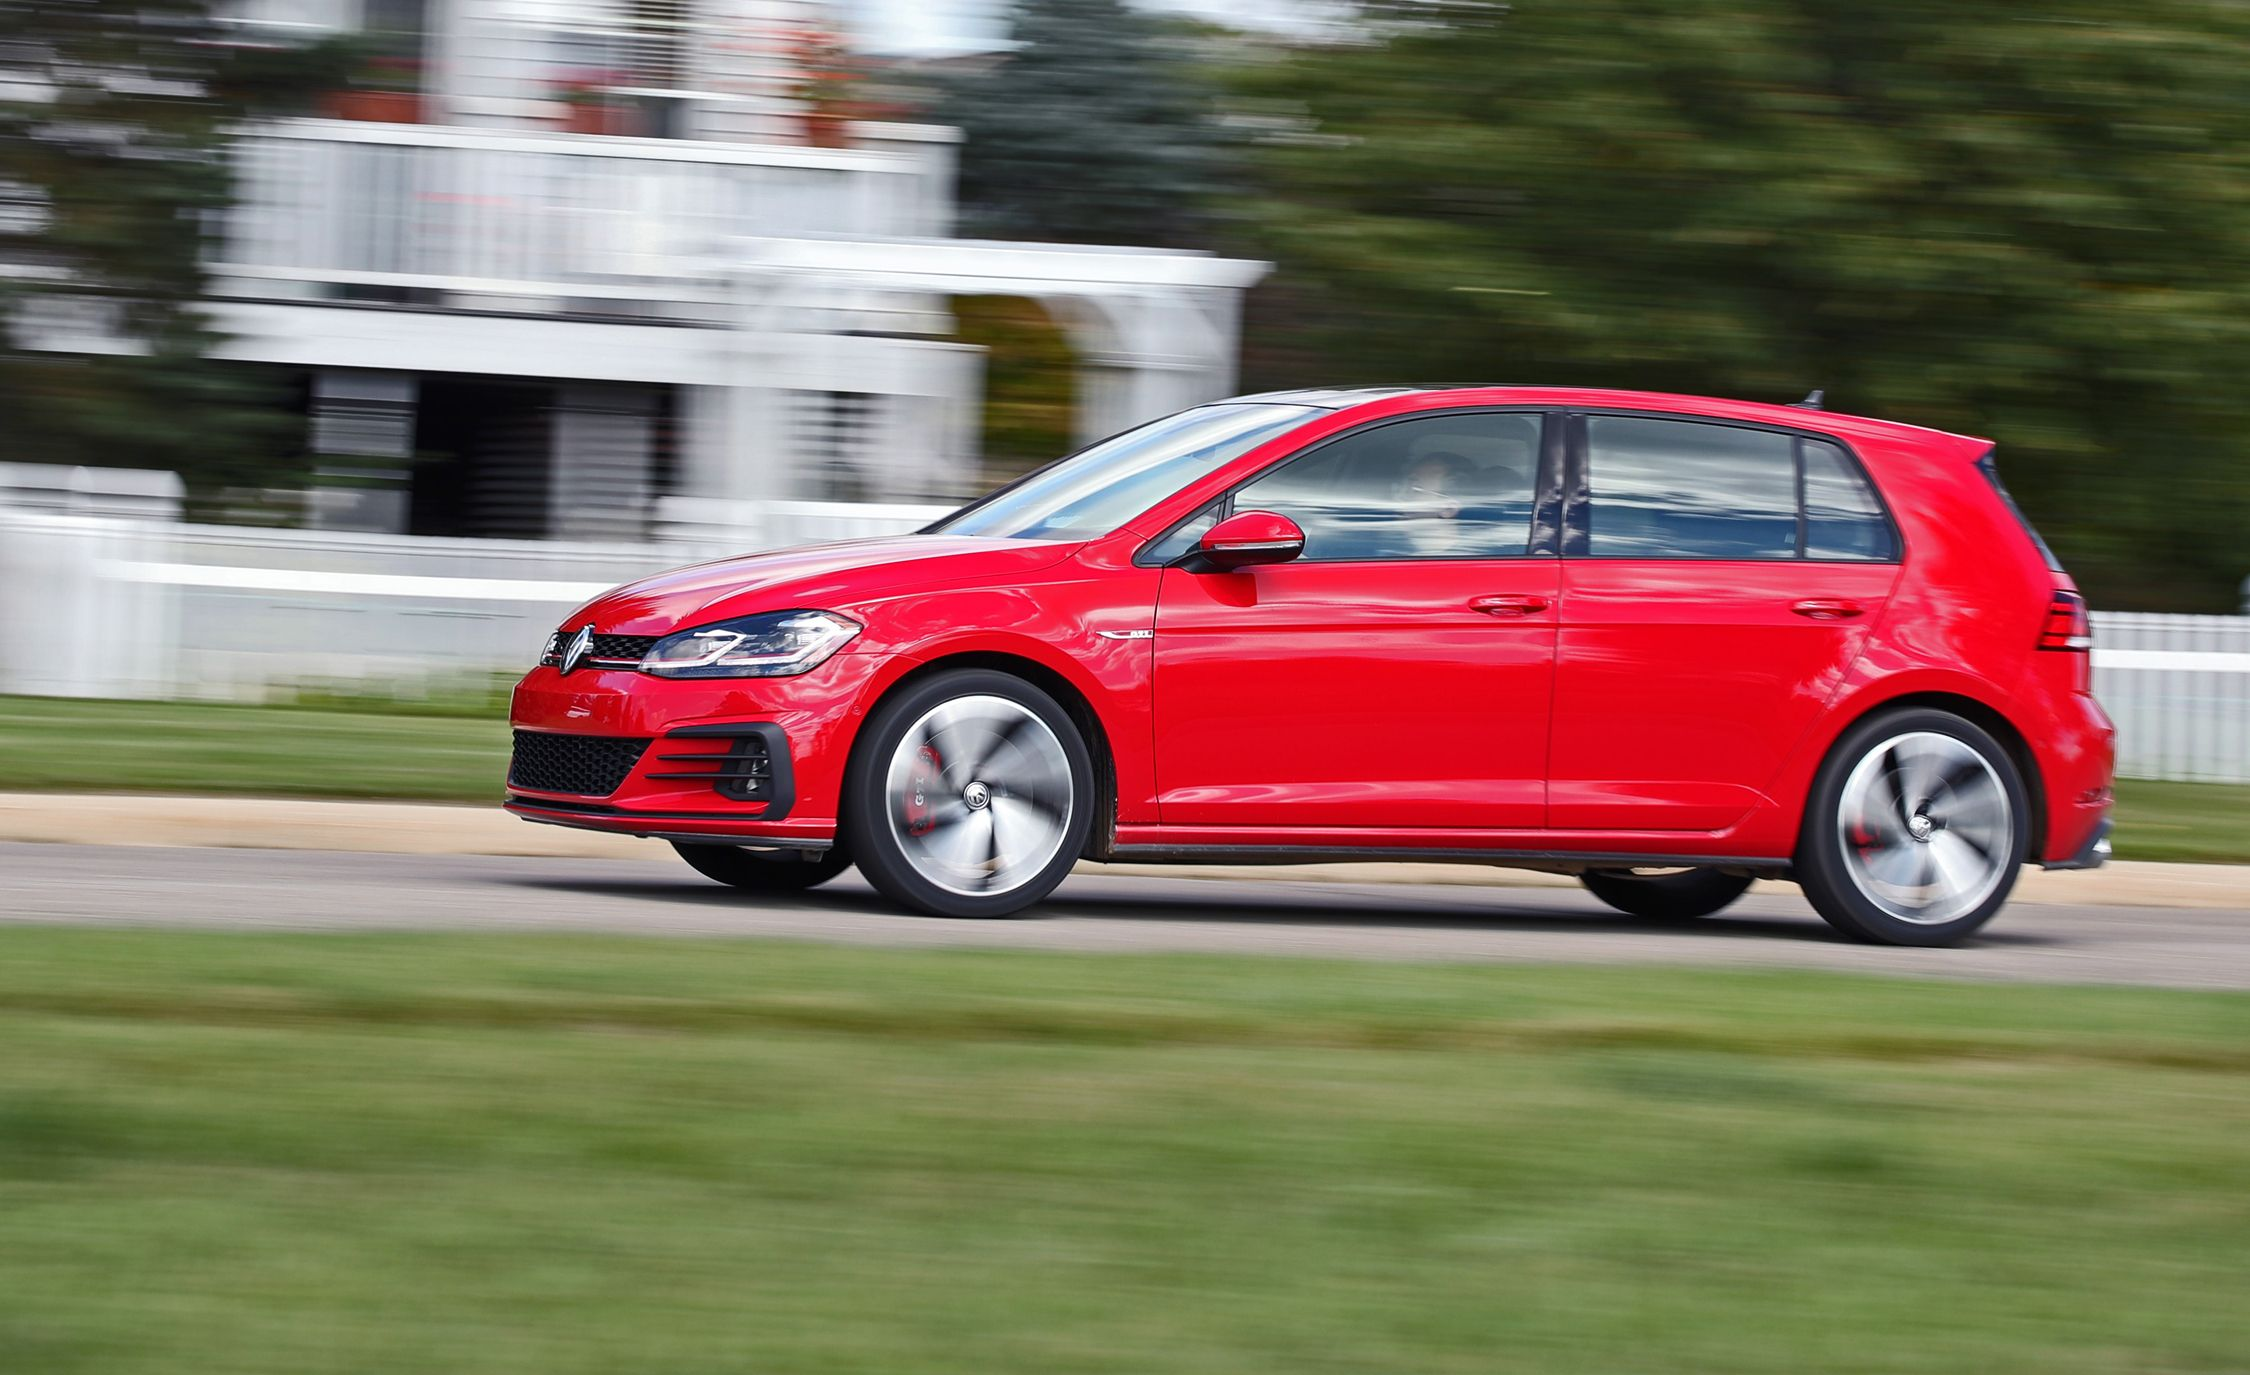 2018 volkswagen golf gti manual test review car and driver rh caranddriver com 2018 Volkswagen Golf GTI 2006 Volkswagen Golf GTI